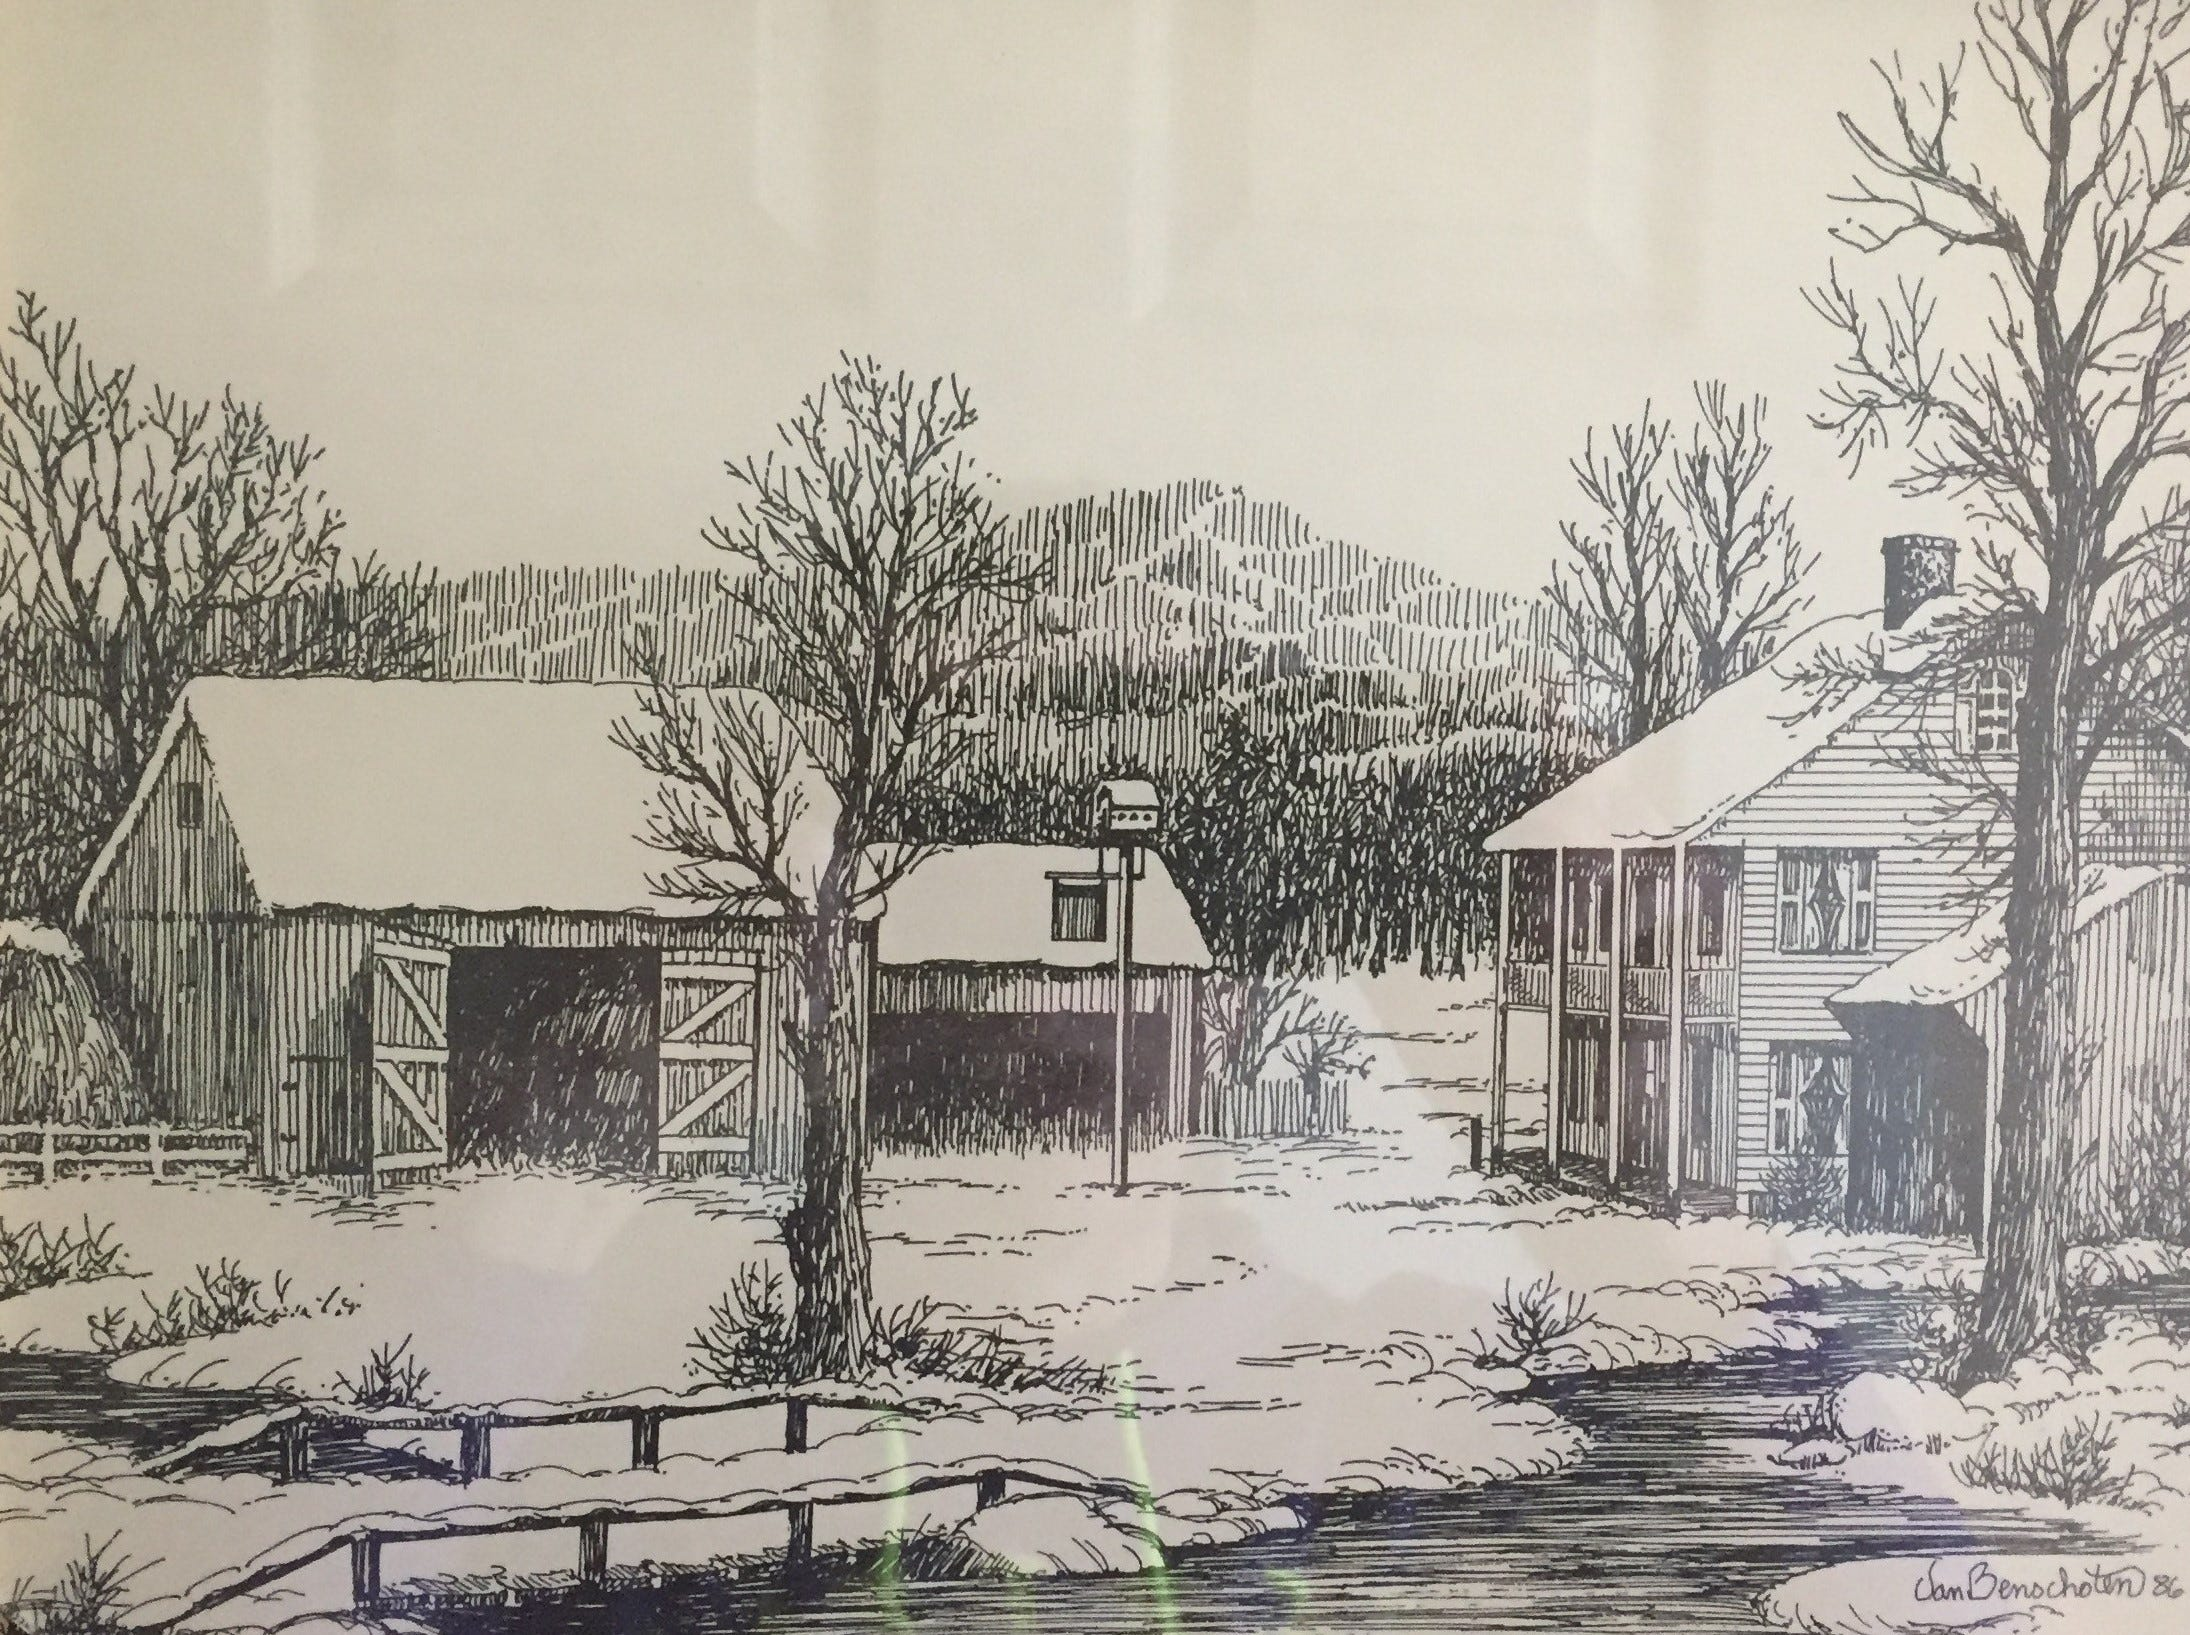 This is a home and barn during winter, another print by Thom Van Benschoten given as a Christmas gift.